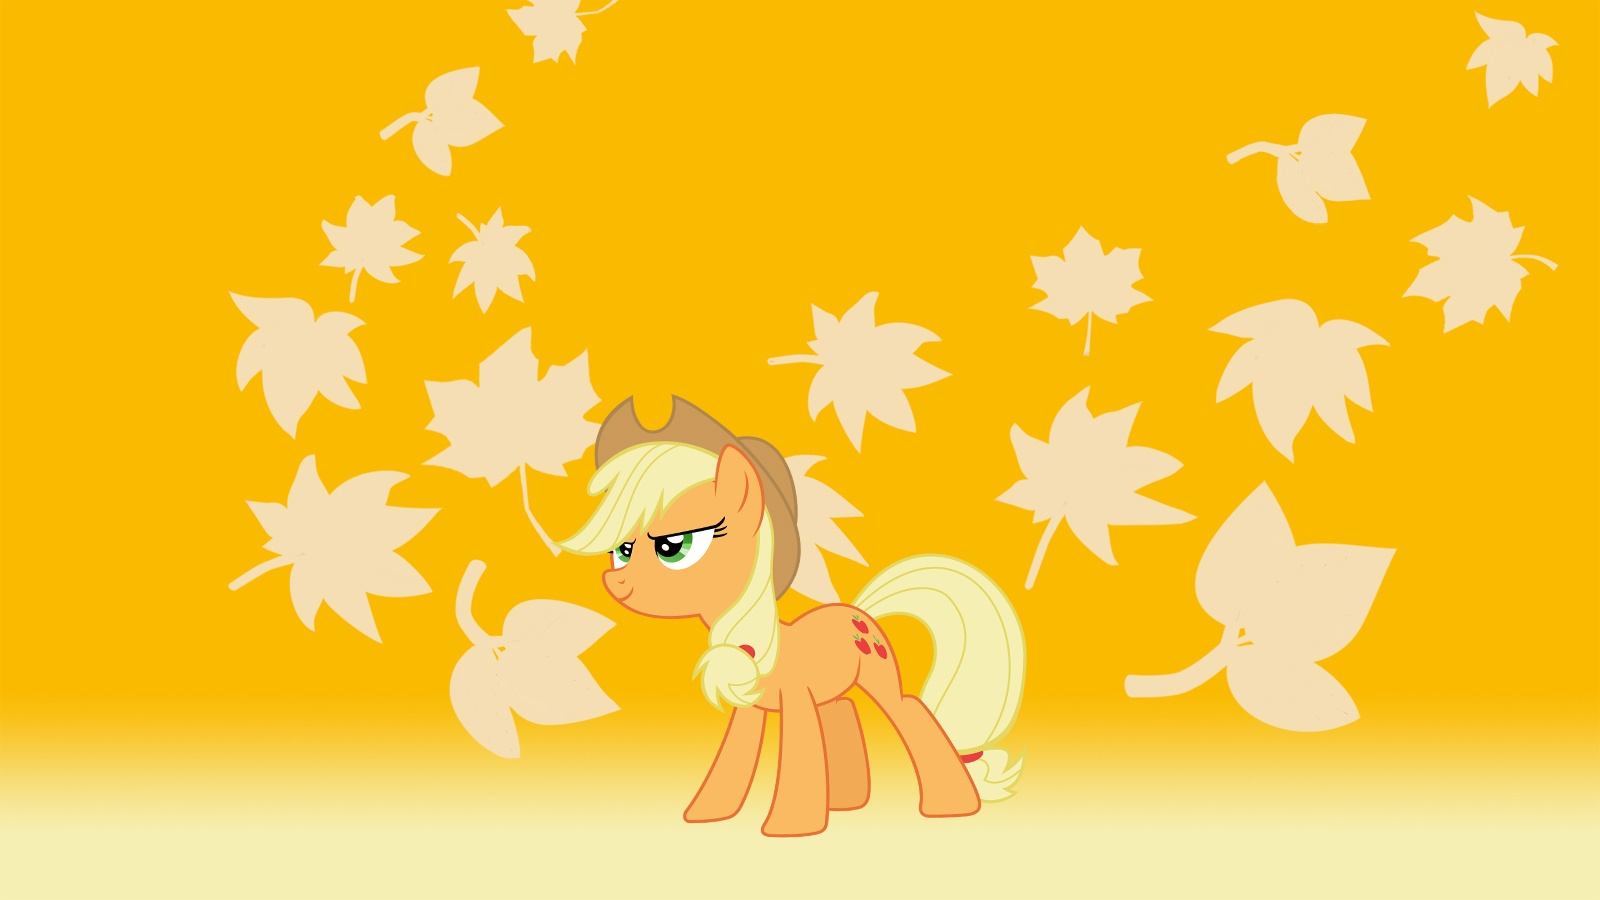 Ausmalbilder My Little Pony Discord : Image Applejack Wallpaper By Artist Alca7raz Jpg My Little Pony